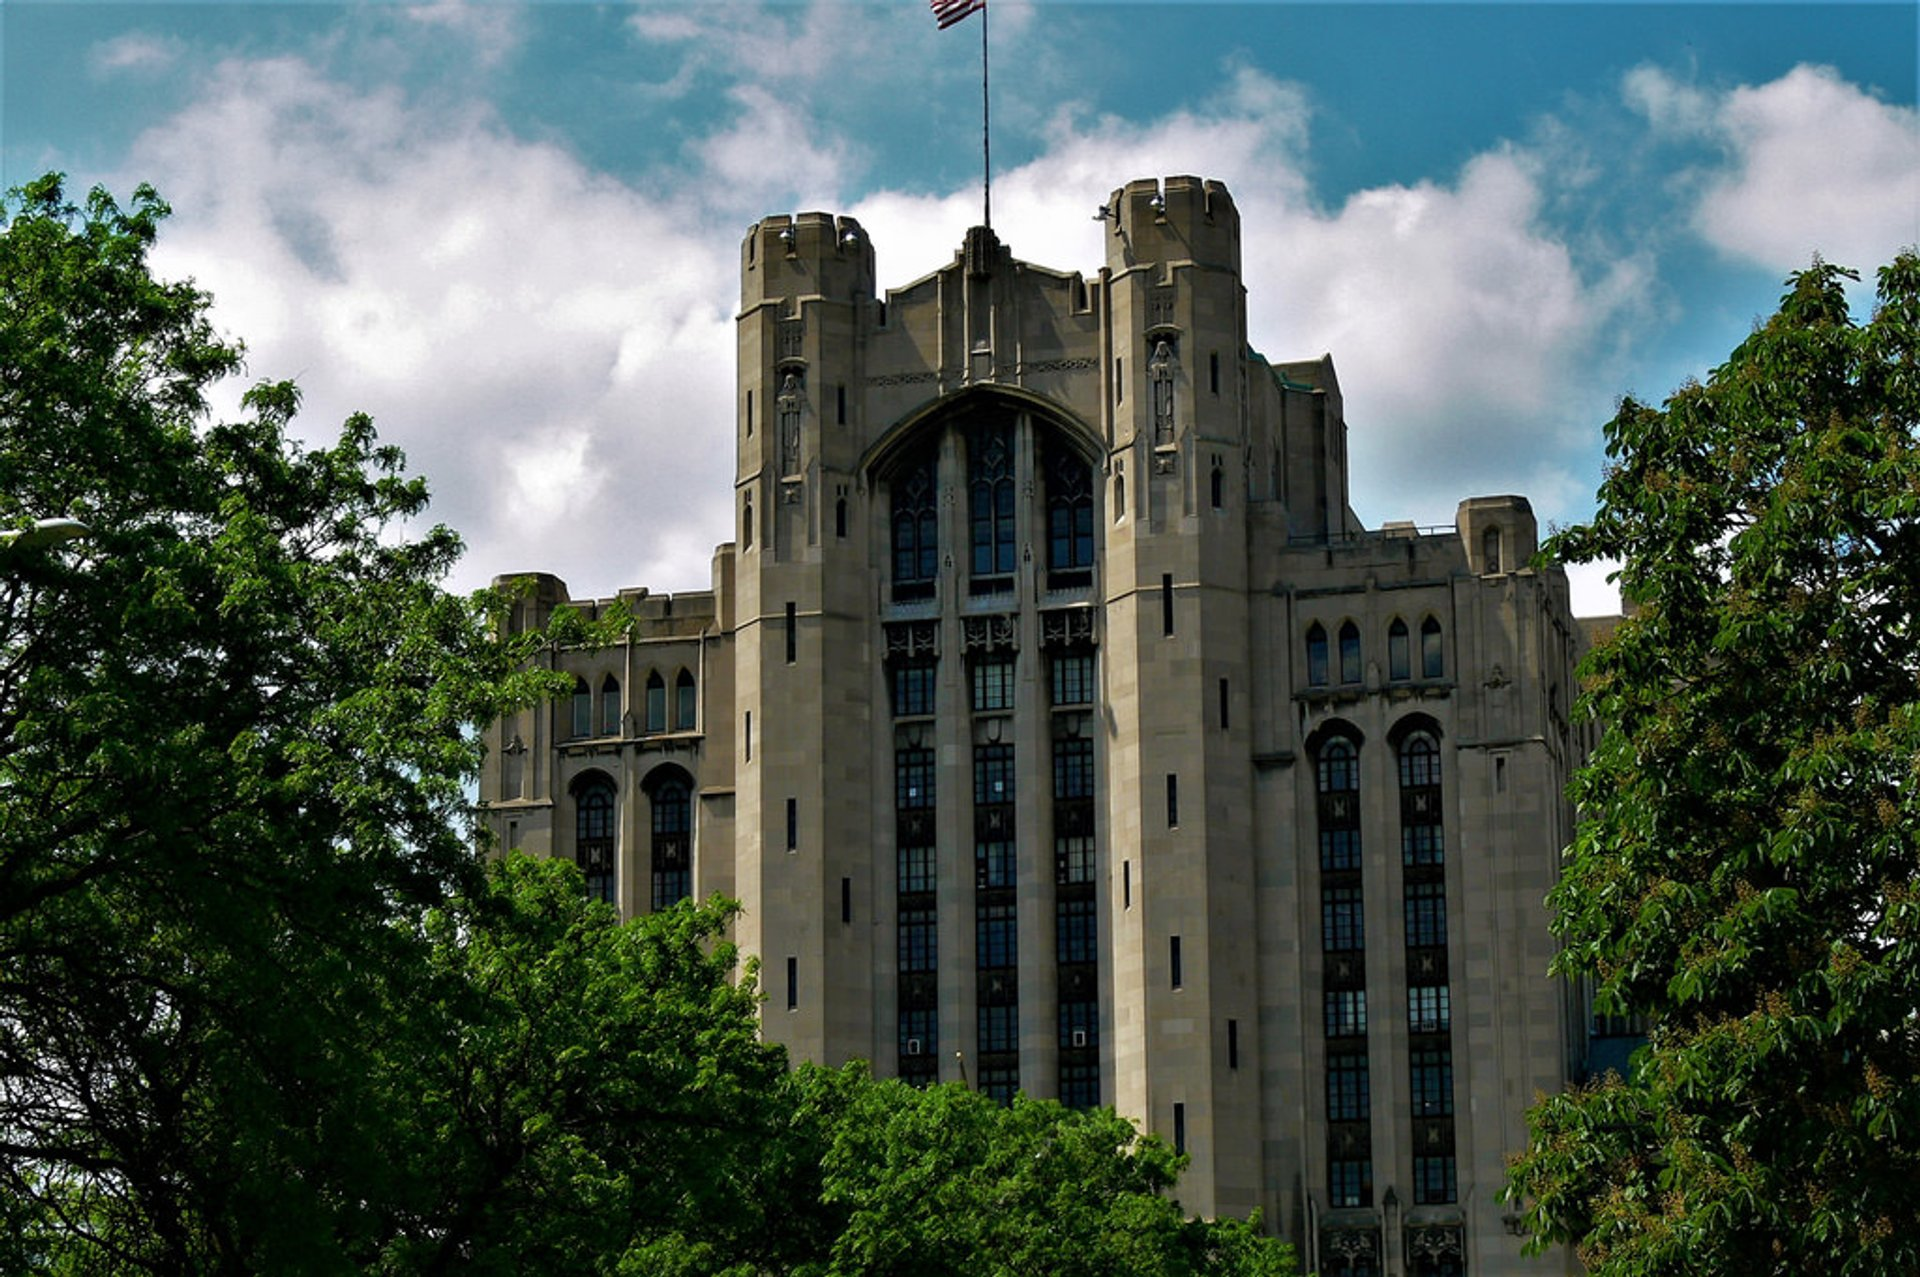 Detroit Masonic Temple in Midwest 2020 - Best Time